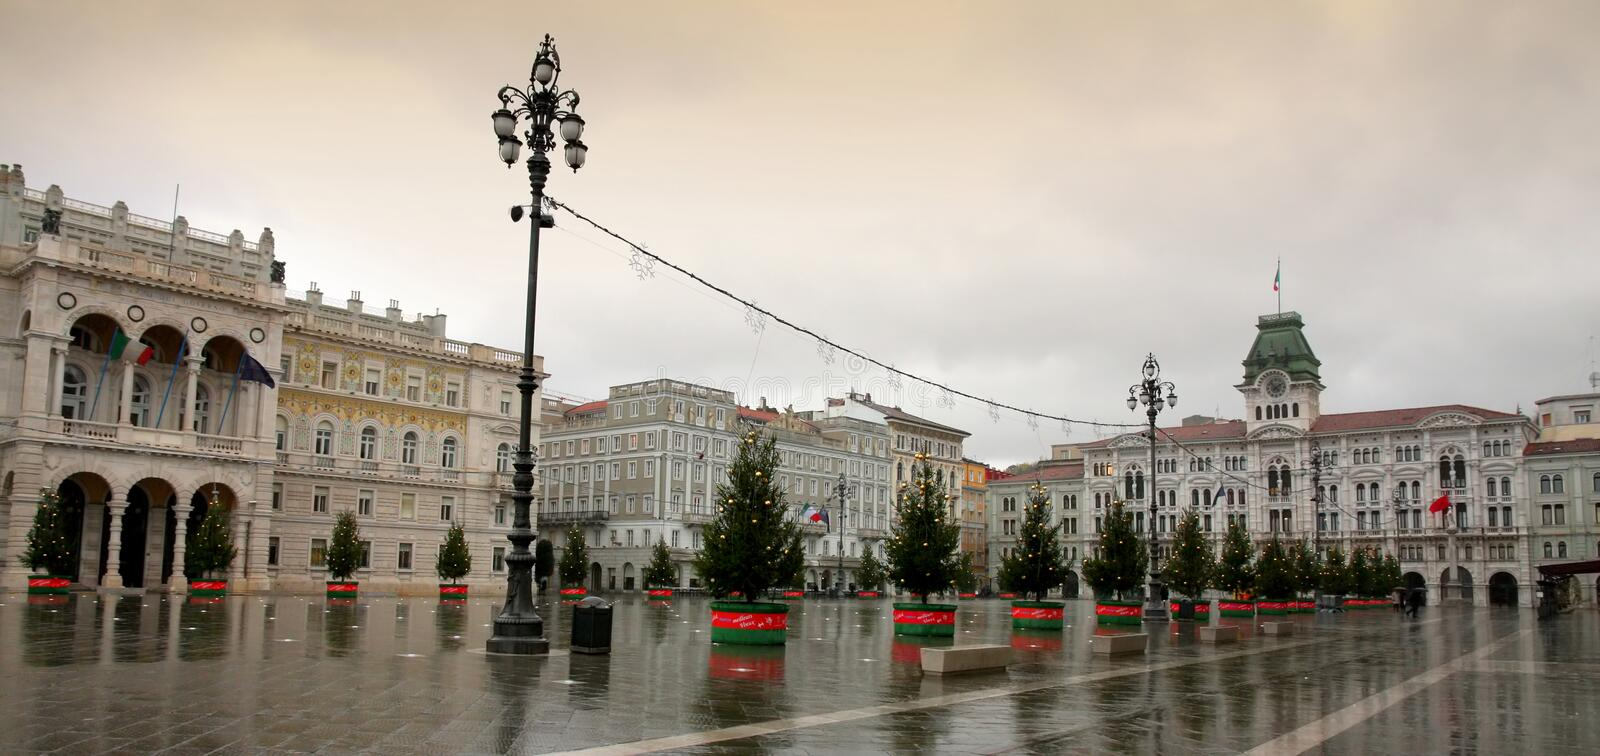 Piazza Unita, Trieste, Italia royalty free stock photos